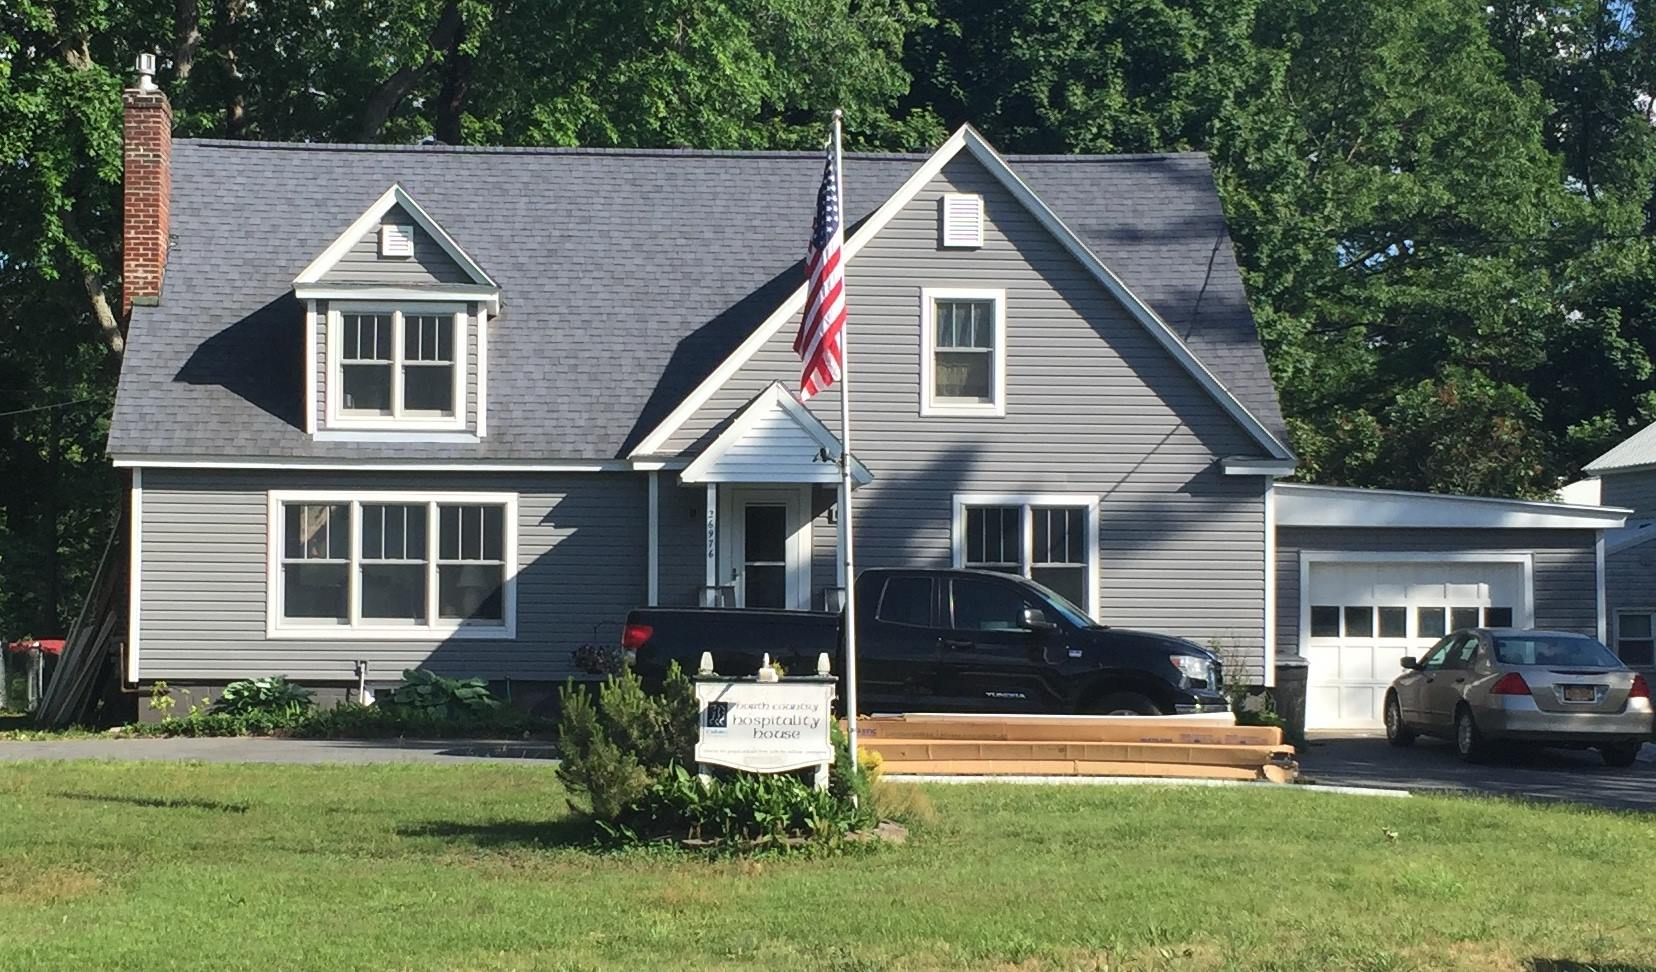 north country hospitality house